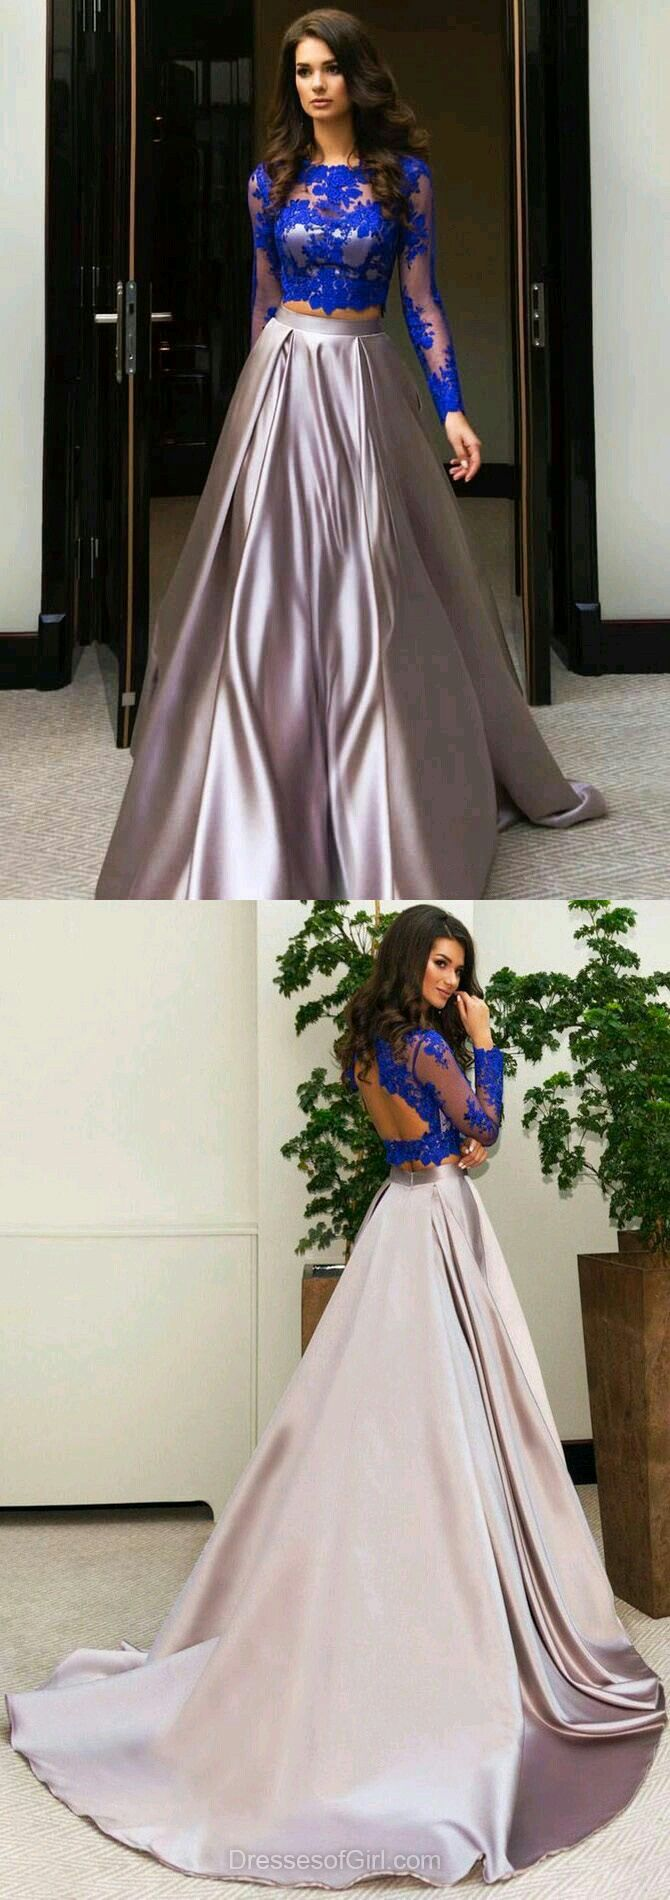 Pin by on ball gowns u dresses pinterest prom indian wear